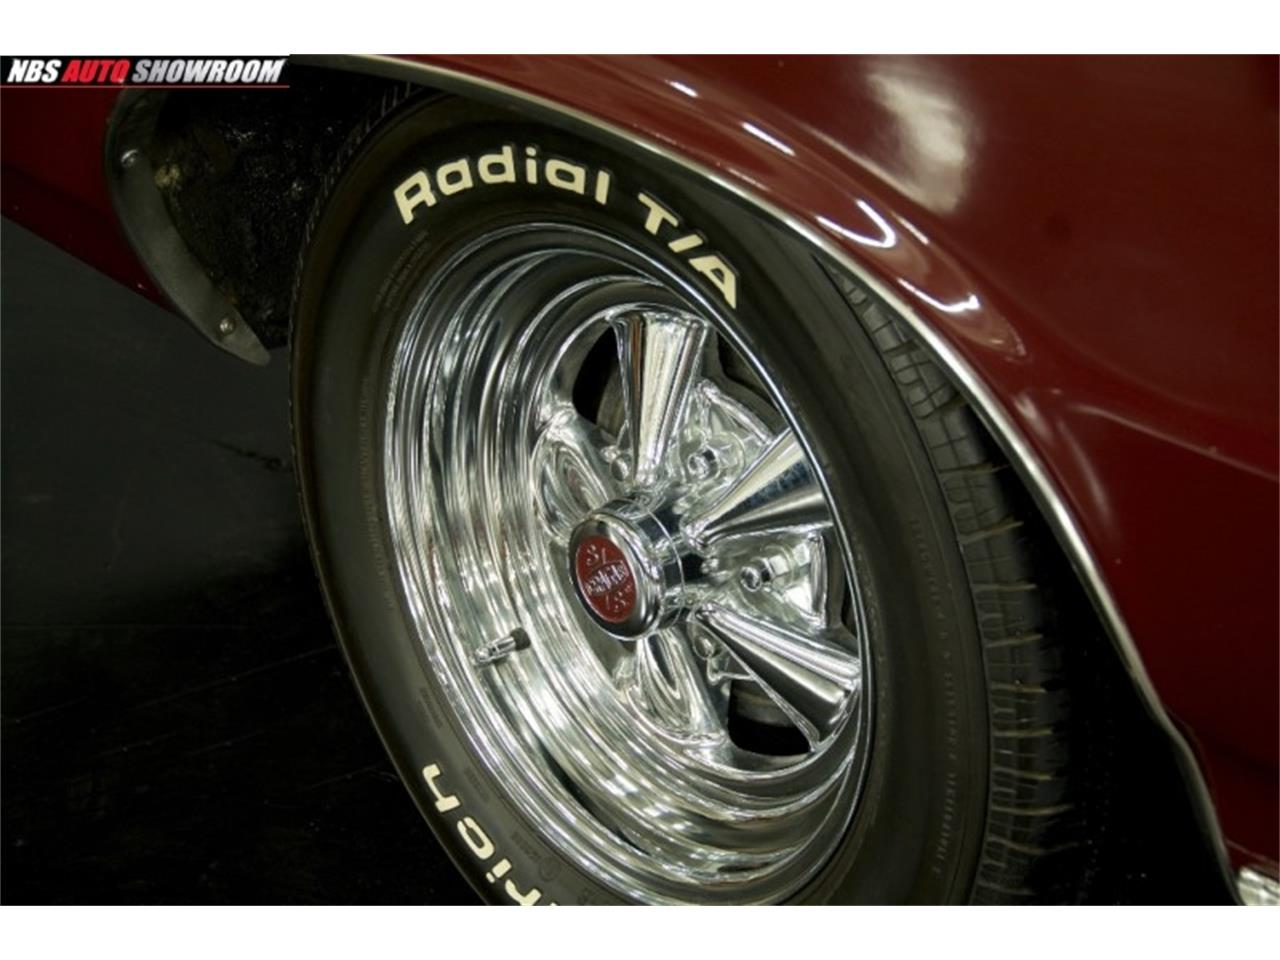 Large Picture of '65 GTO Offered by NBS Auto Showroom - OWIJ